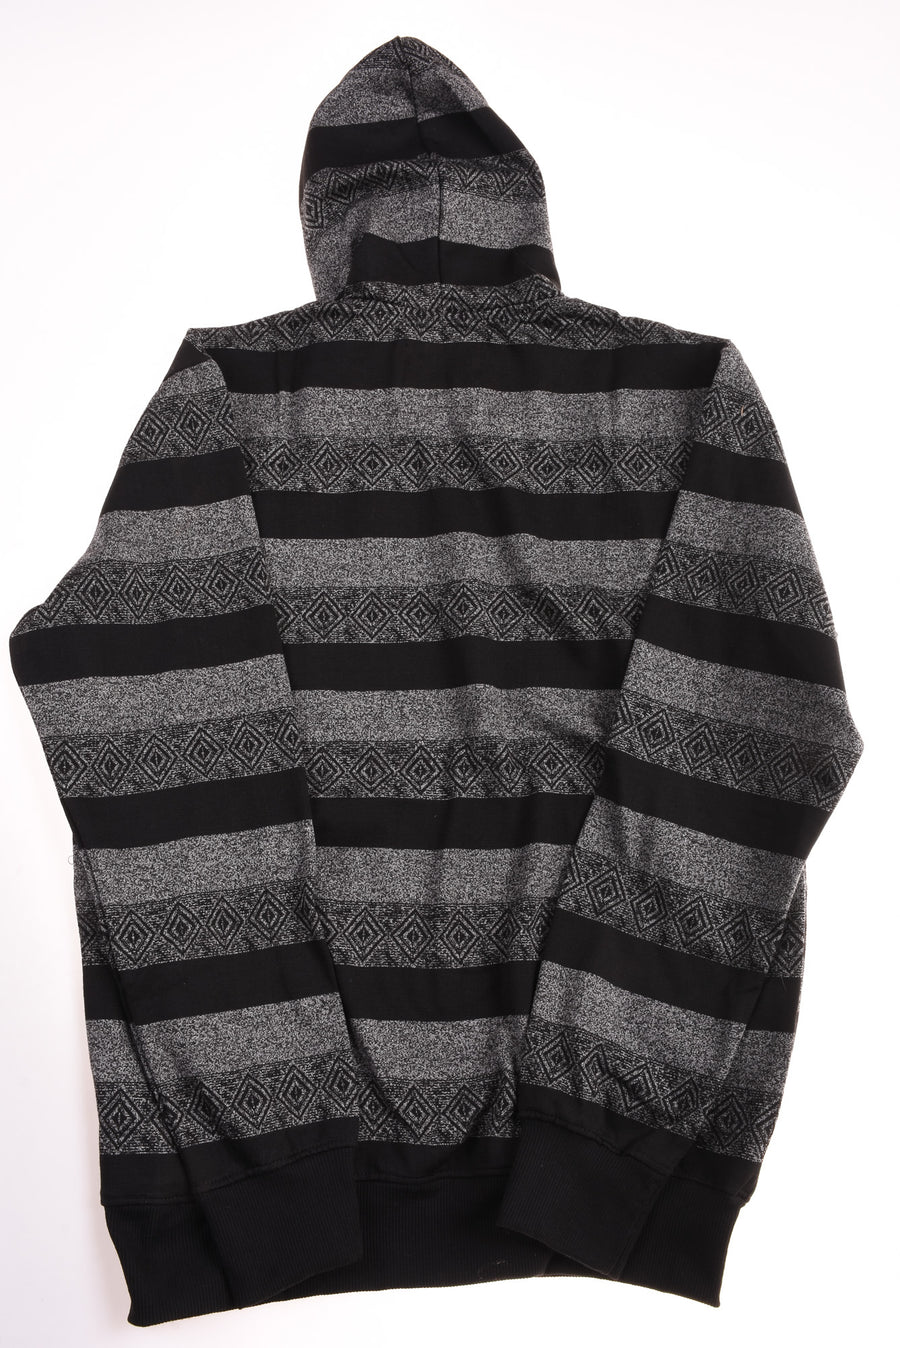 NEW Marx & Dutch Men's Hoodie Large Black & Gray